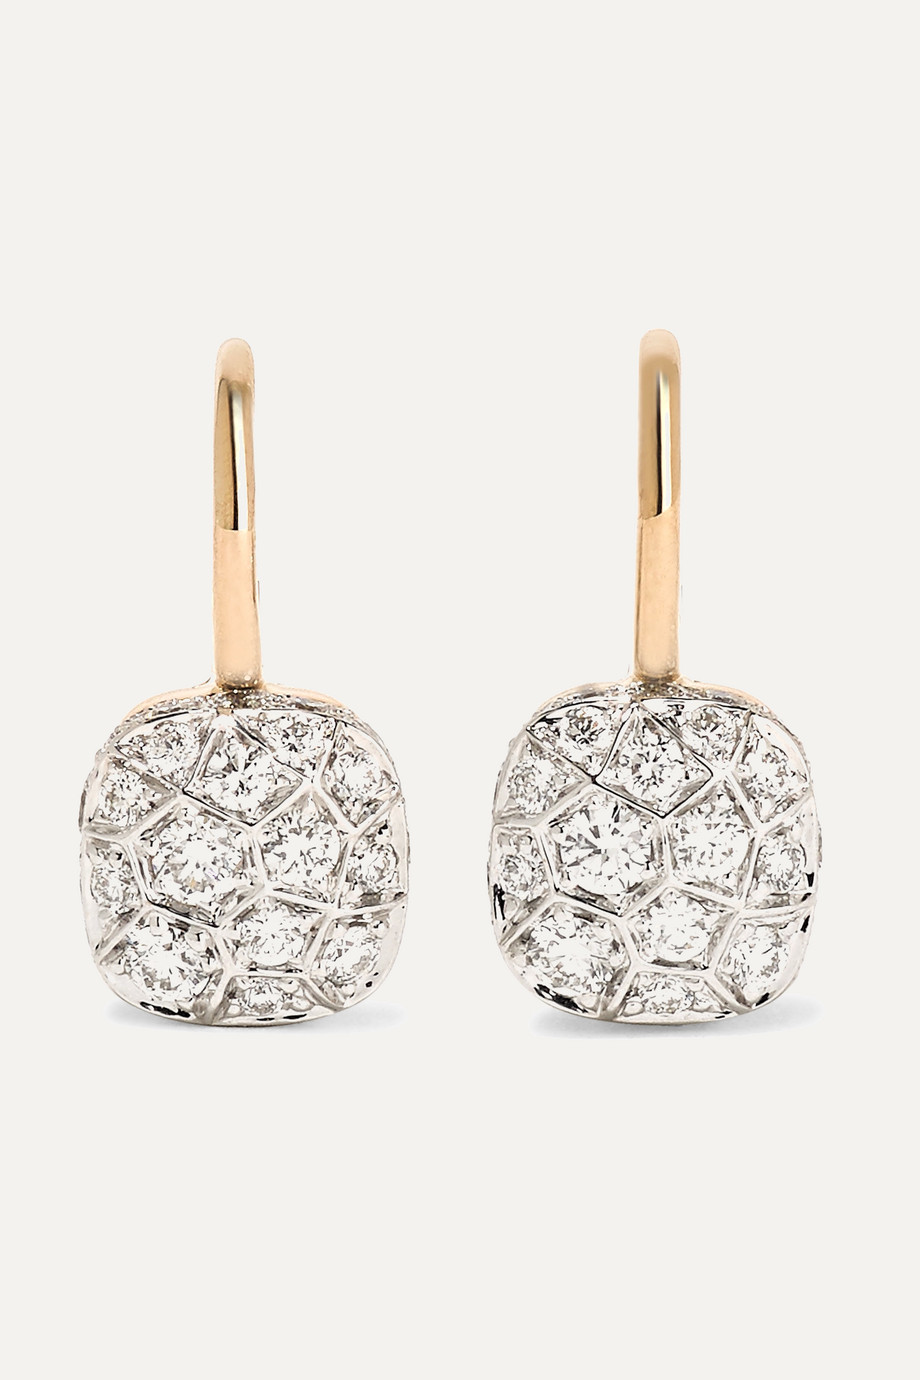 POMELLATO Nudo 18-karat rose and white gold diamond earrings